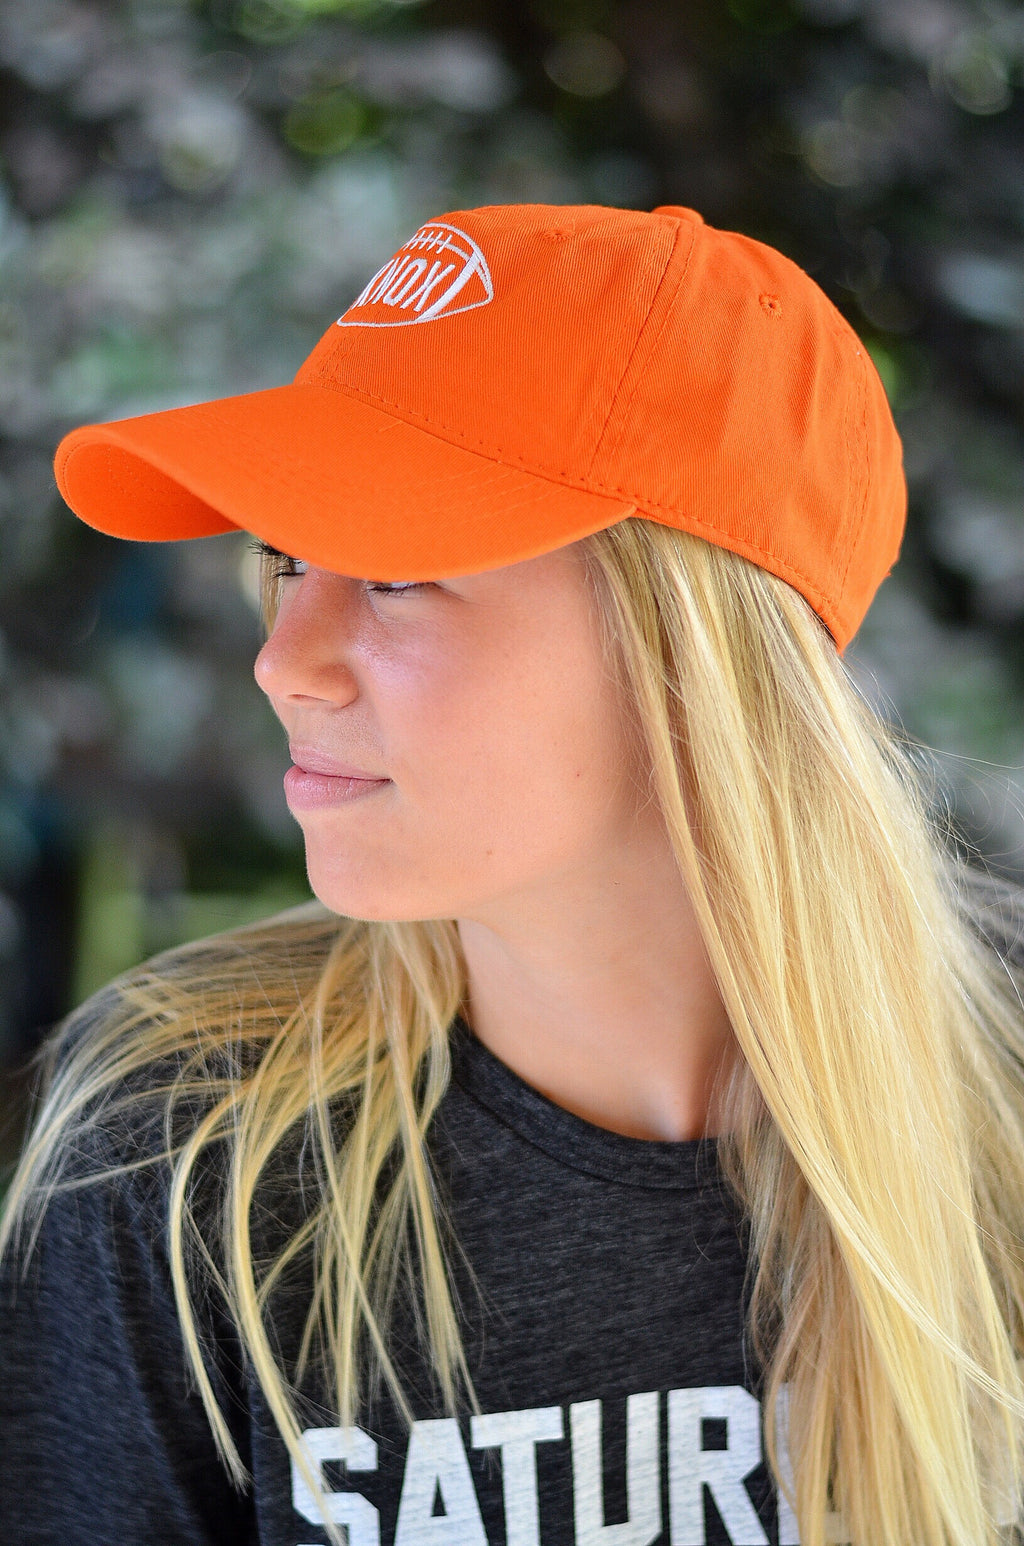 Football Hat in Orange, KNOX